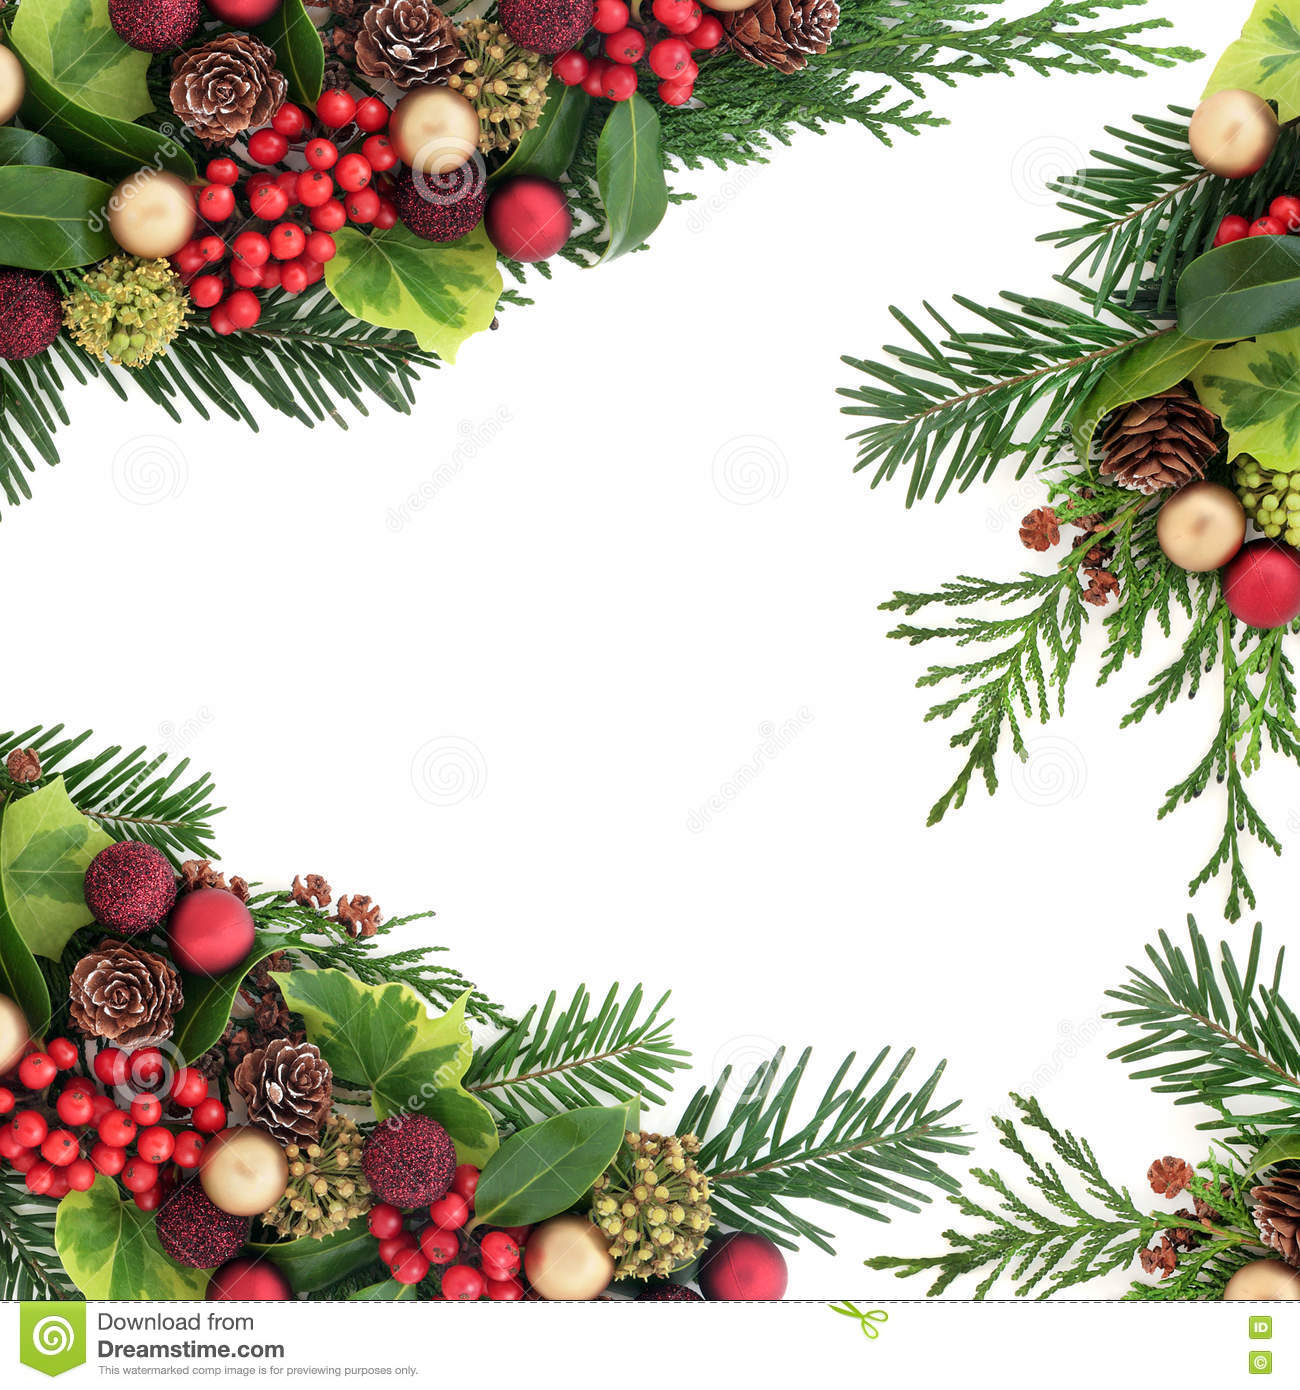 523c627dfa3c Decorative christmas border with red and gold bauble decorations, holly and  berries, ivy, pine cones, cedar cypress and fir leaf sprigs over white ...